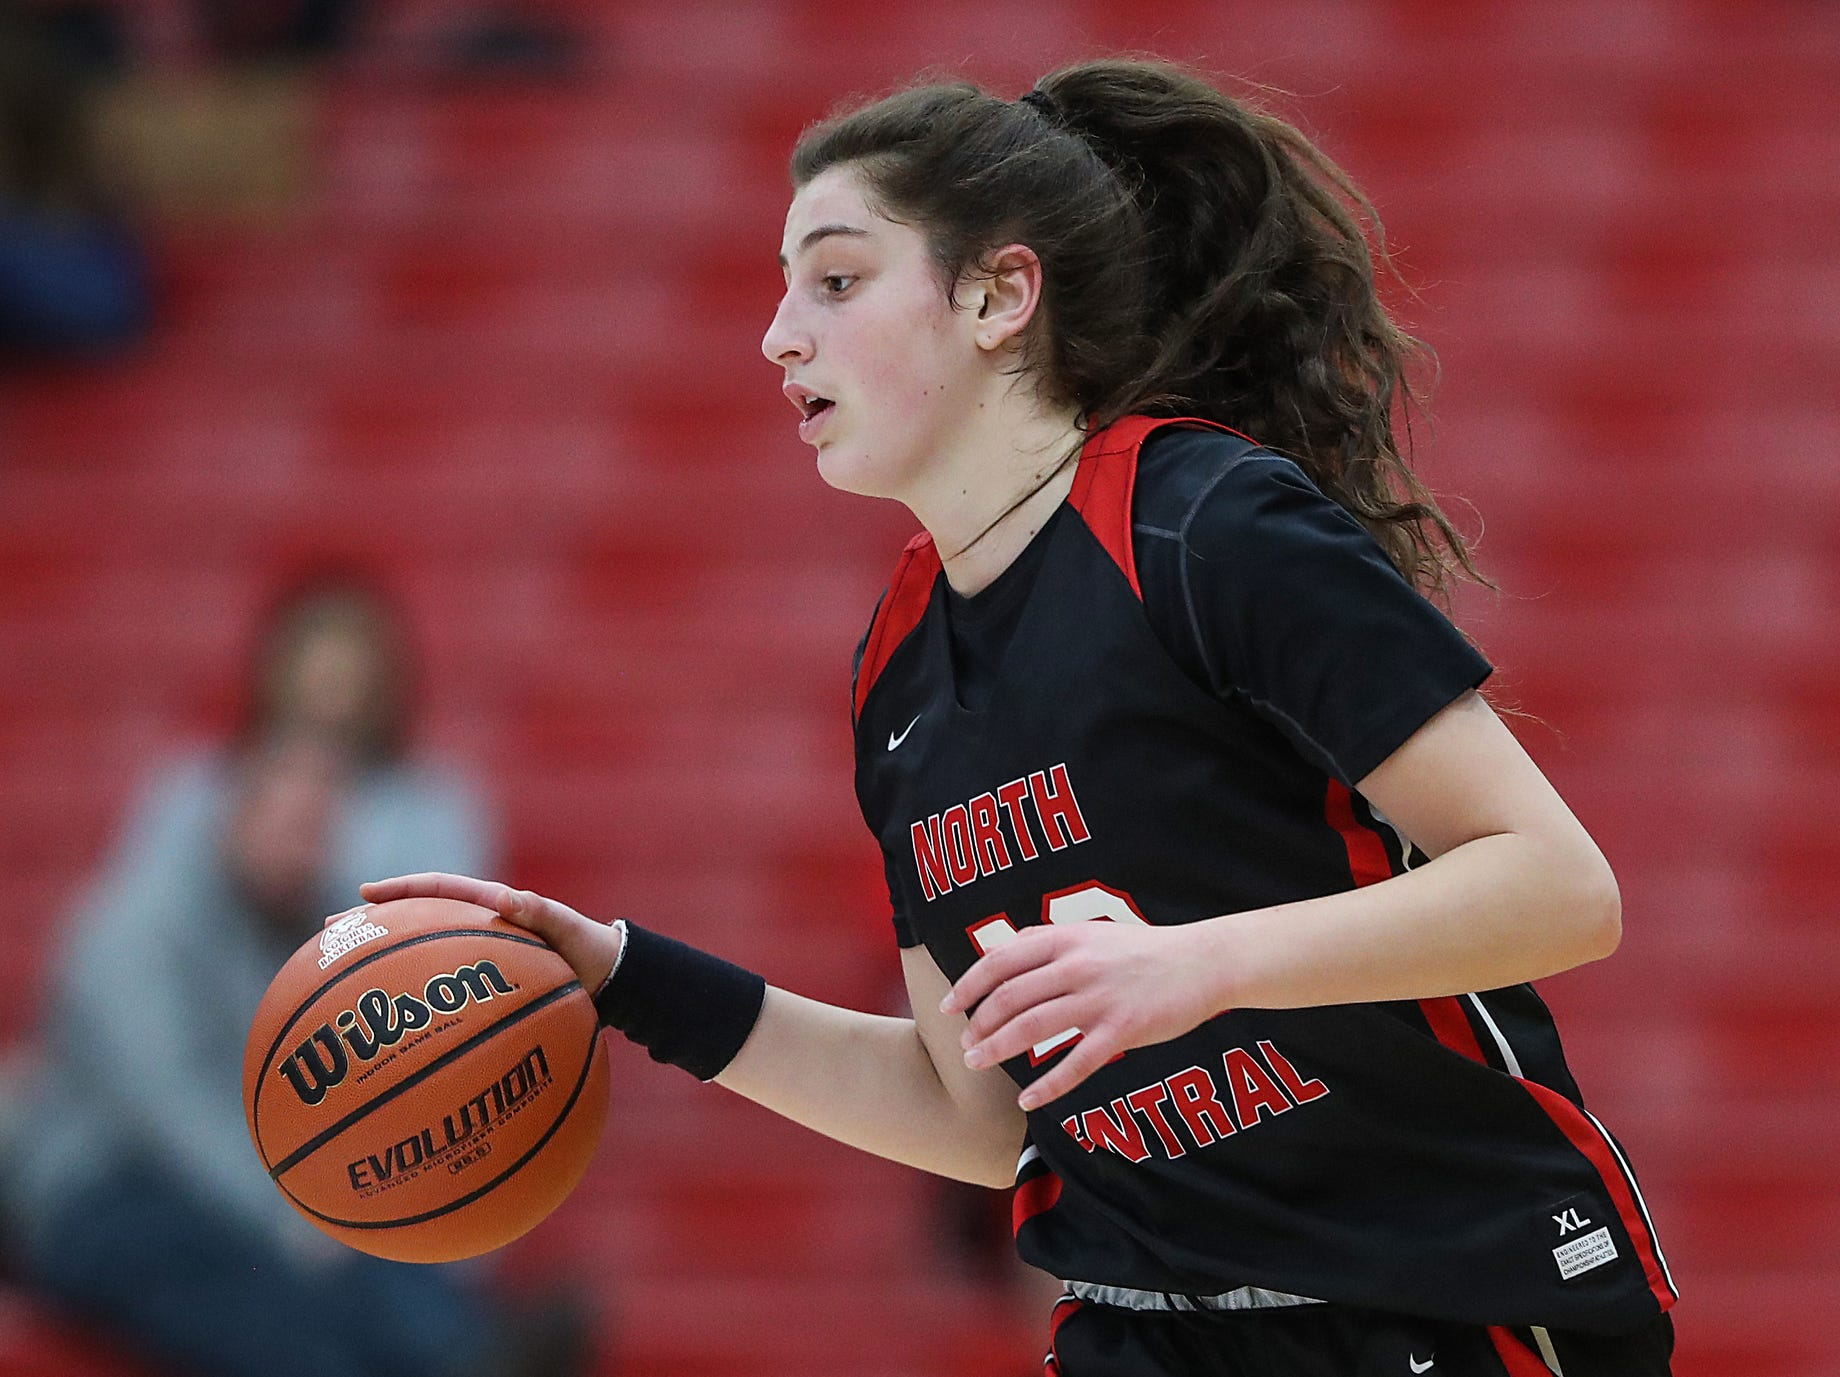 North Central Panthers forward Meg Newman (42) works a possession in the second half of the game at Center Grove High School in Greenwood, Ind., Thursday, Jan. 10, 2019. Center Grove defeated North Central, 51-44.